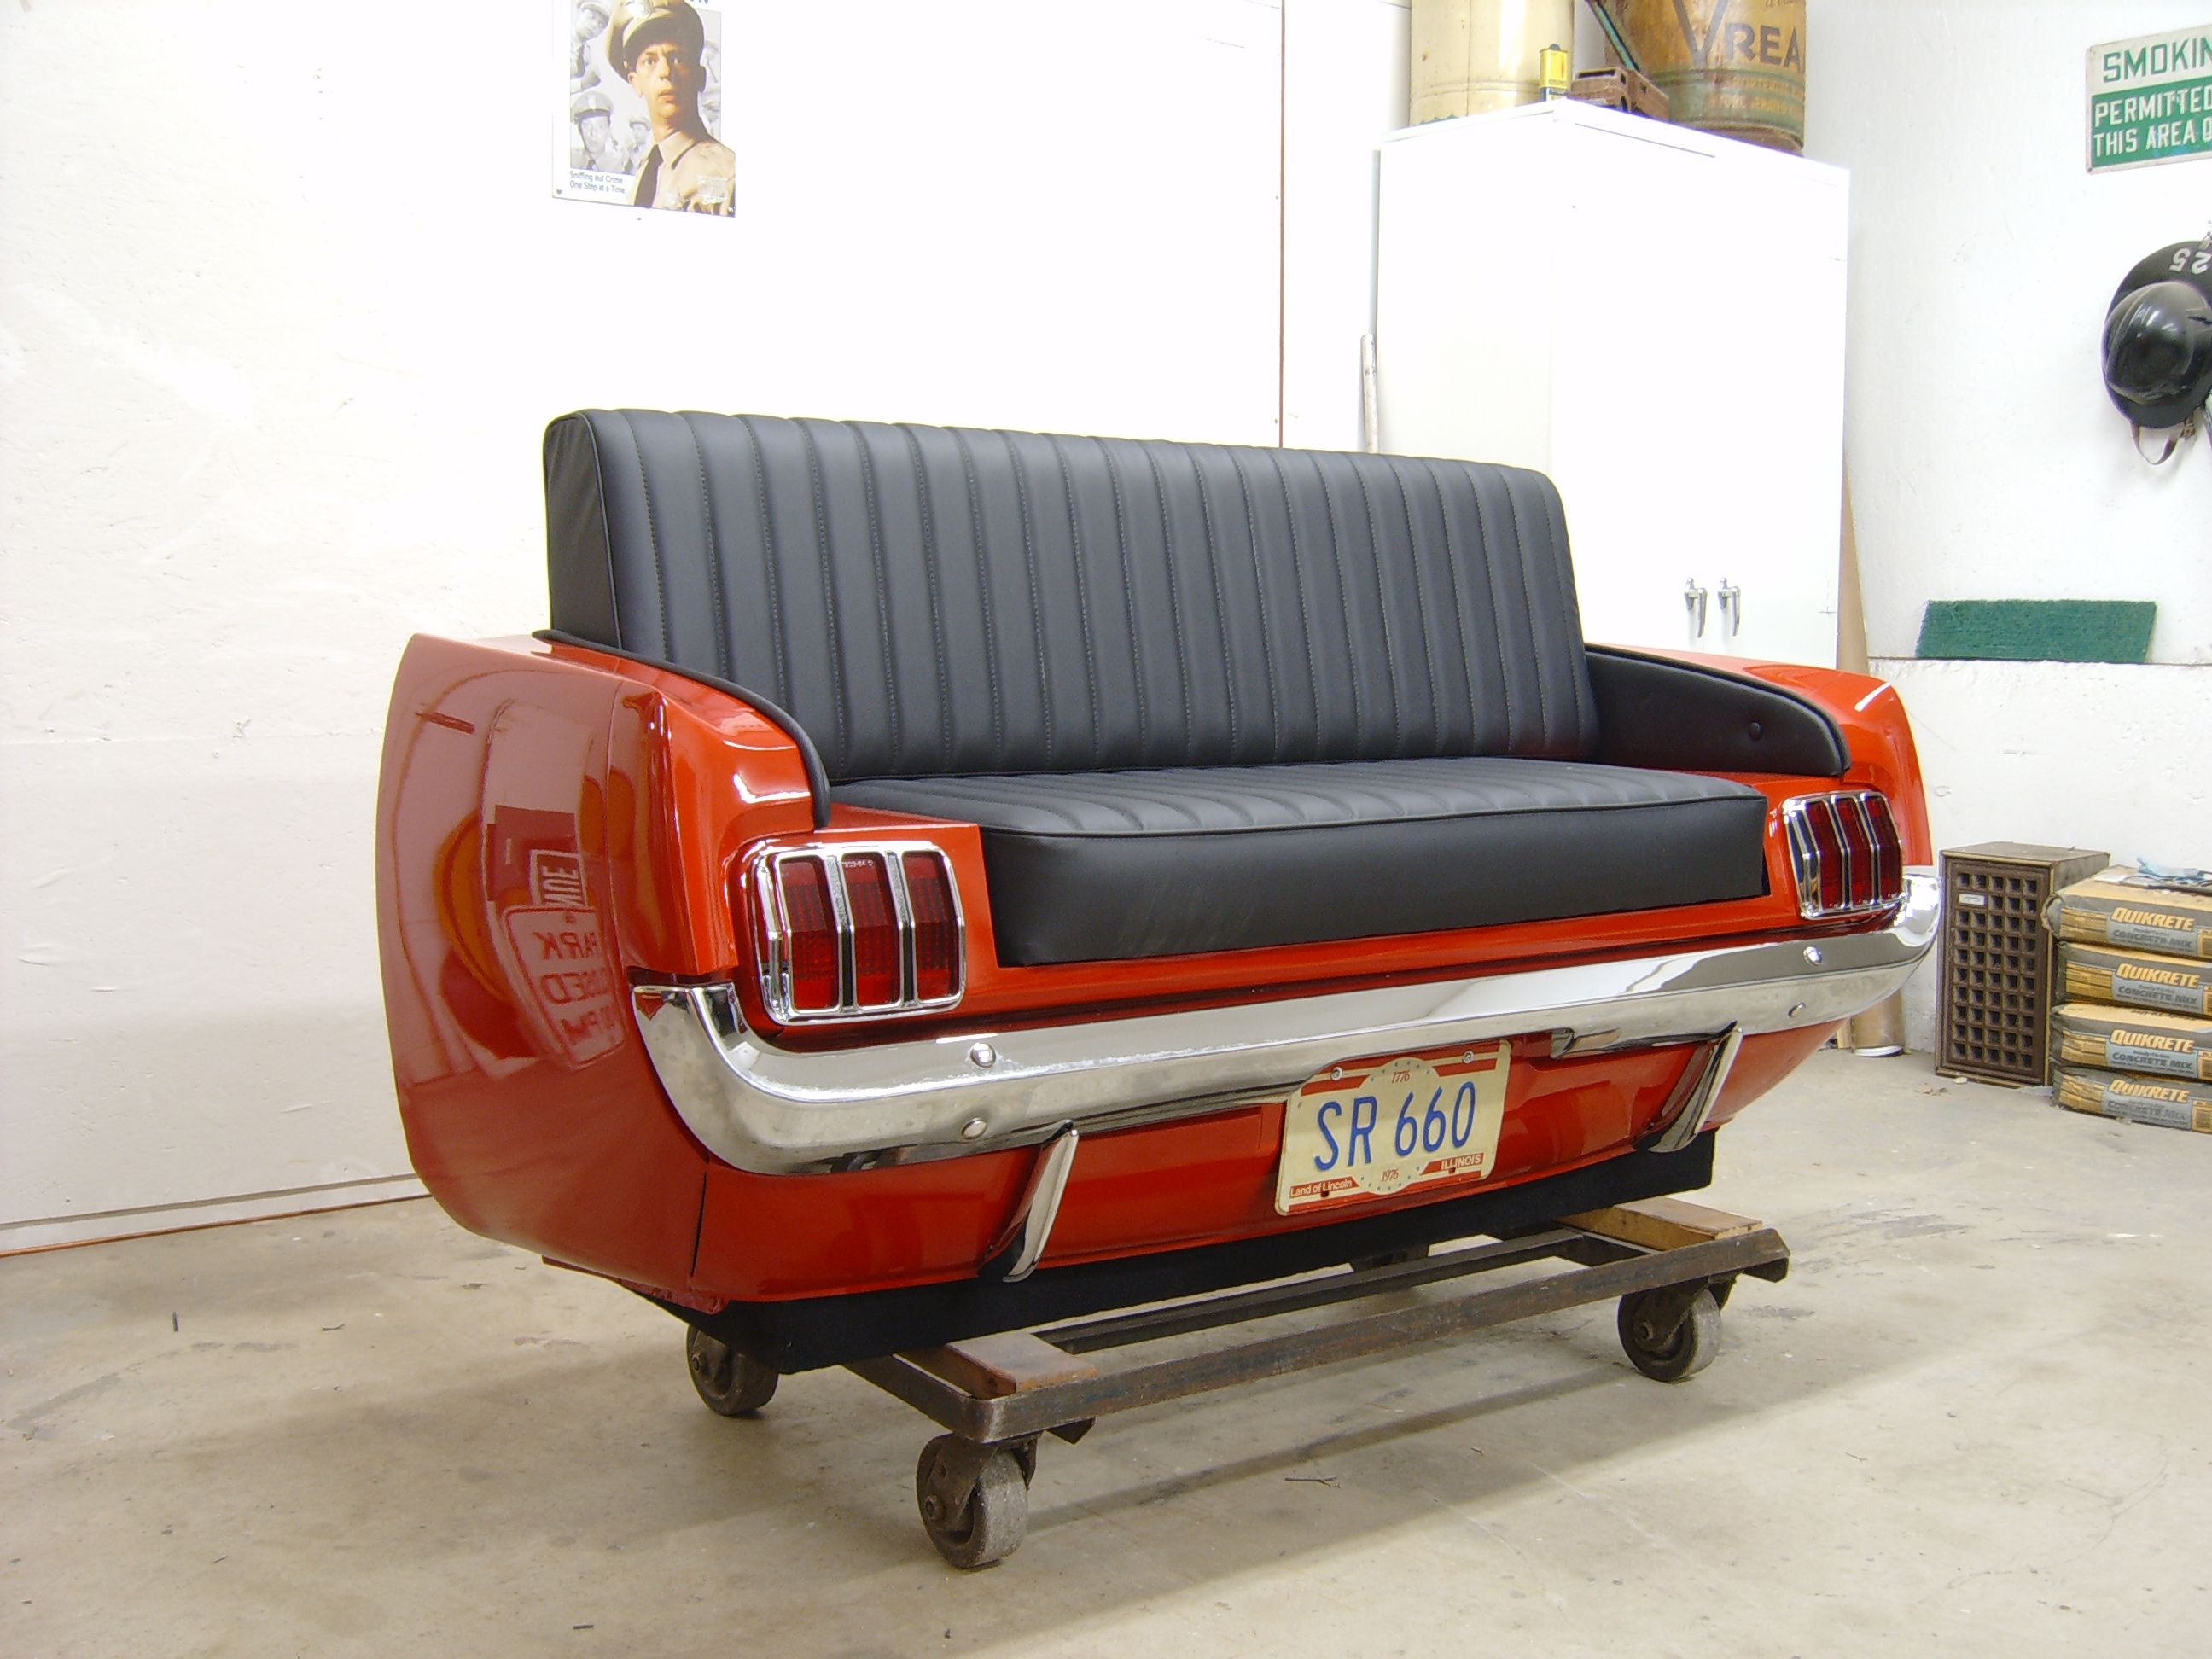 cars sofa chair slipcovers for queen size sleeper sofas 65 ford mustang couch they start at 3000 bucks ahhh